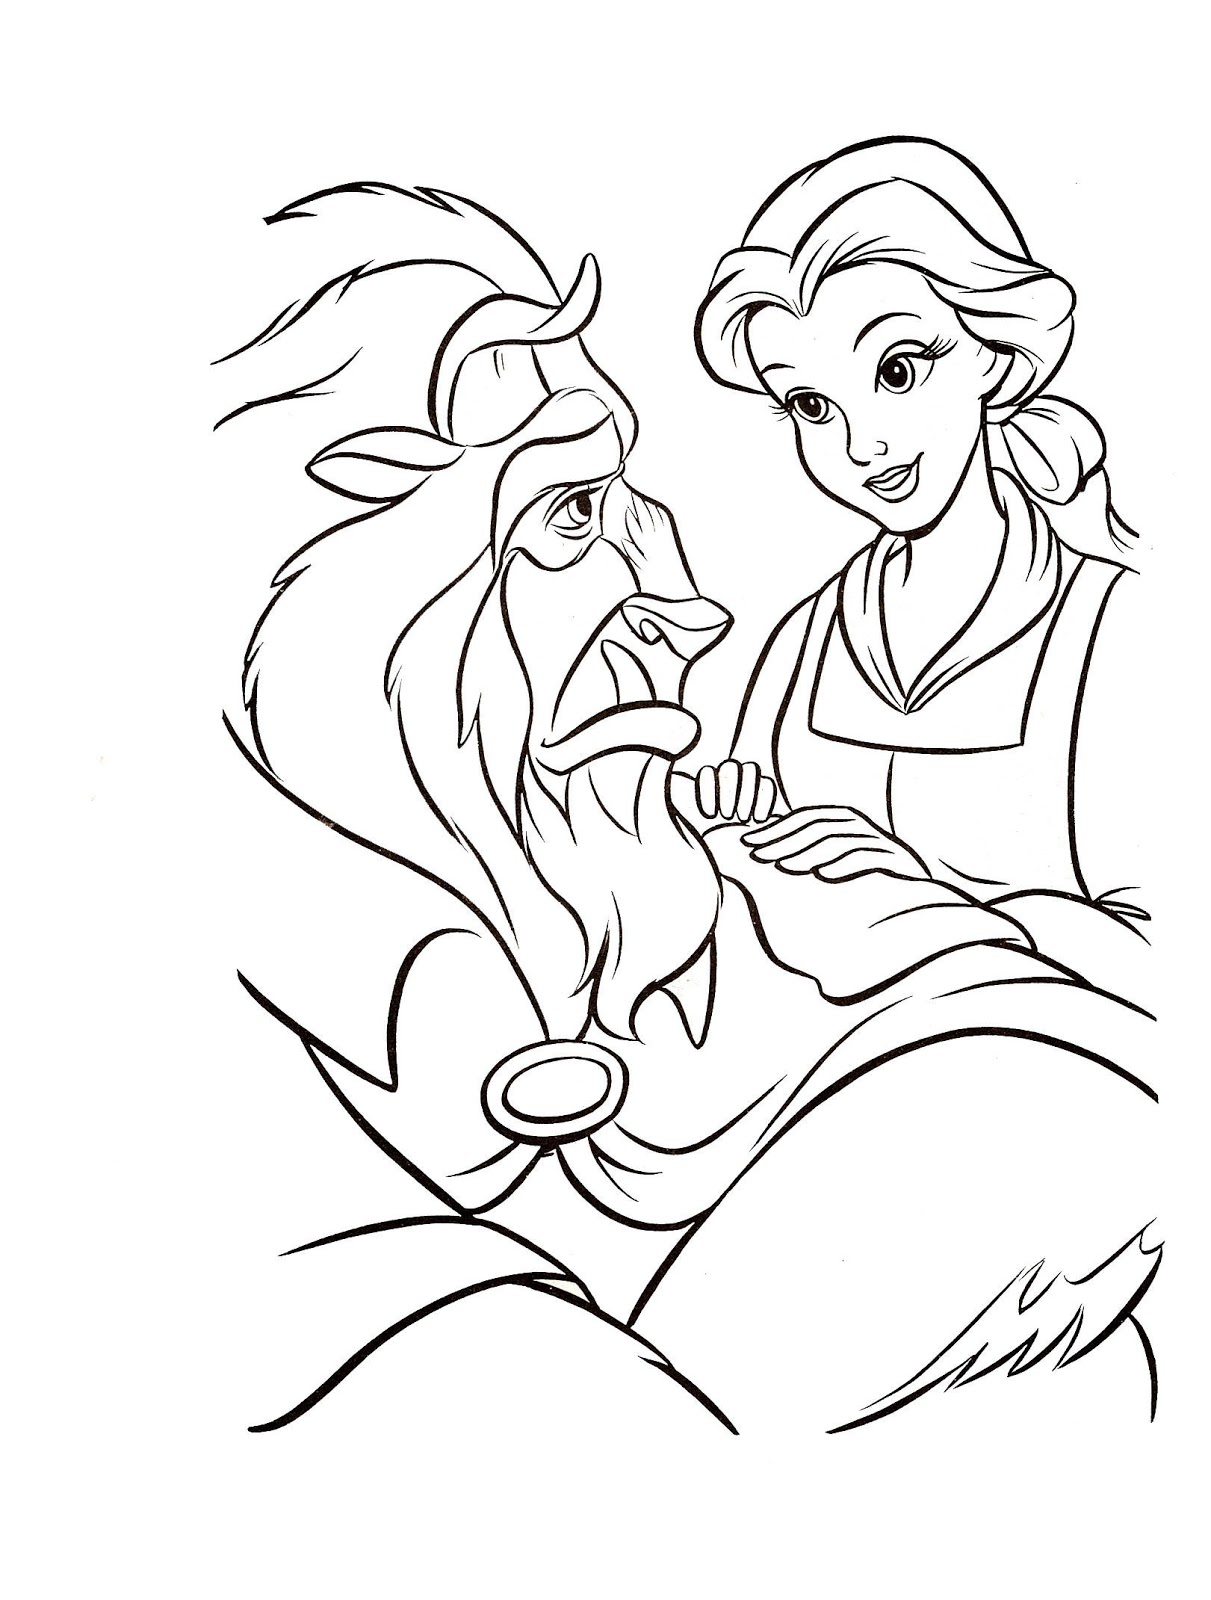 Disney Coloring Pages Gaston Coloring Pages Gaston Coloring Pages